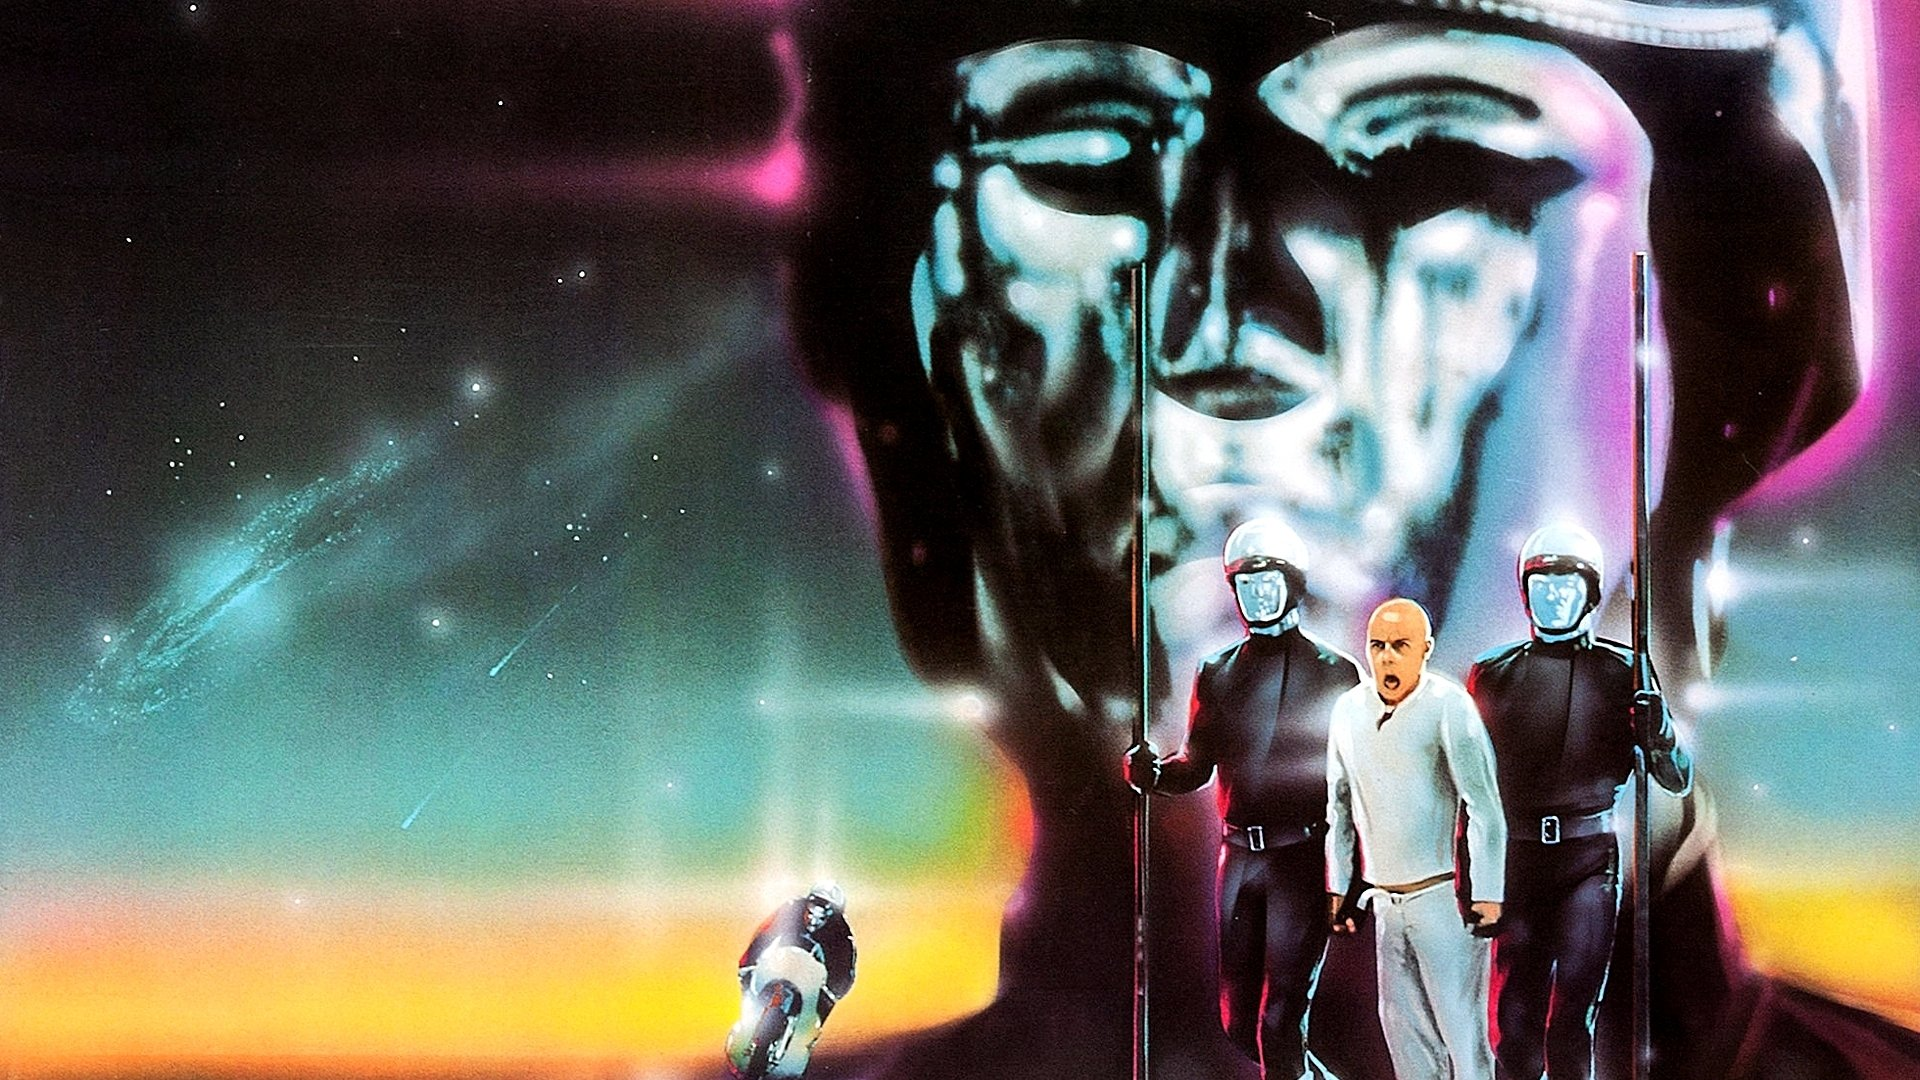 'You have nowhere to go': A Review of George Lucas' THX 1138